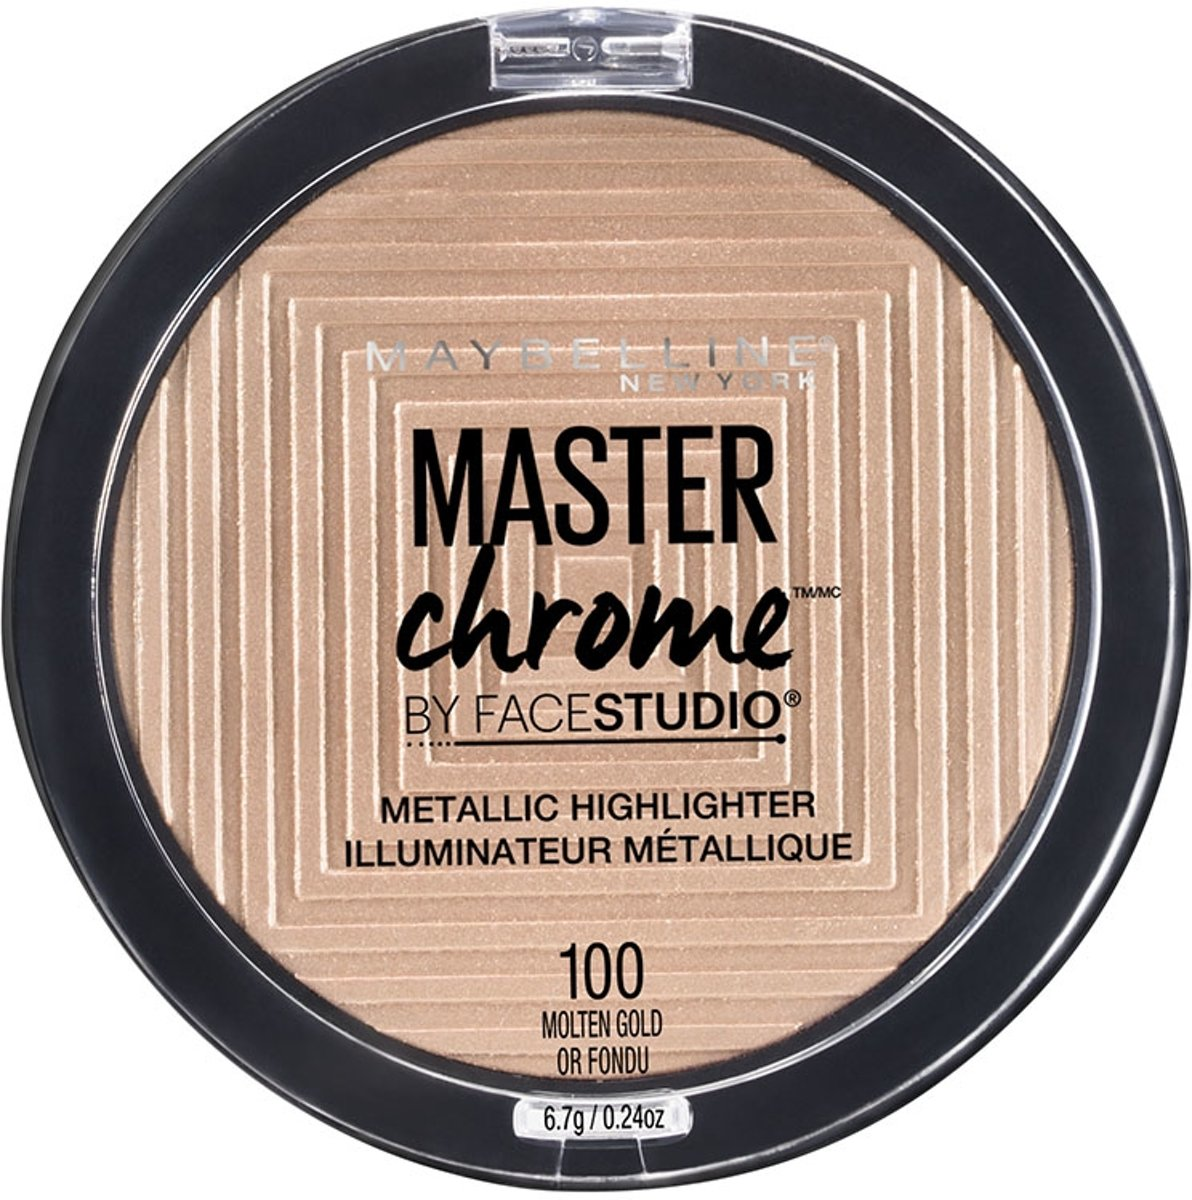 Maybelline Master Chrome Highlighter - 100 Molten Gold